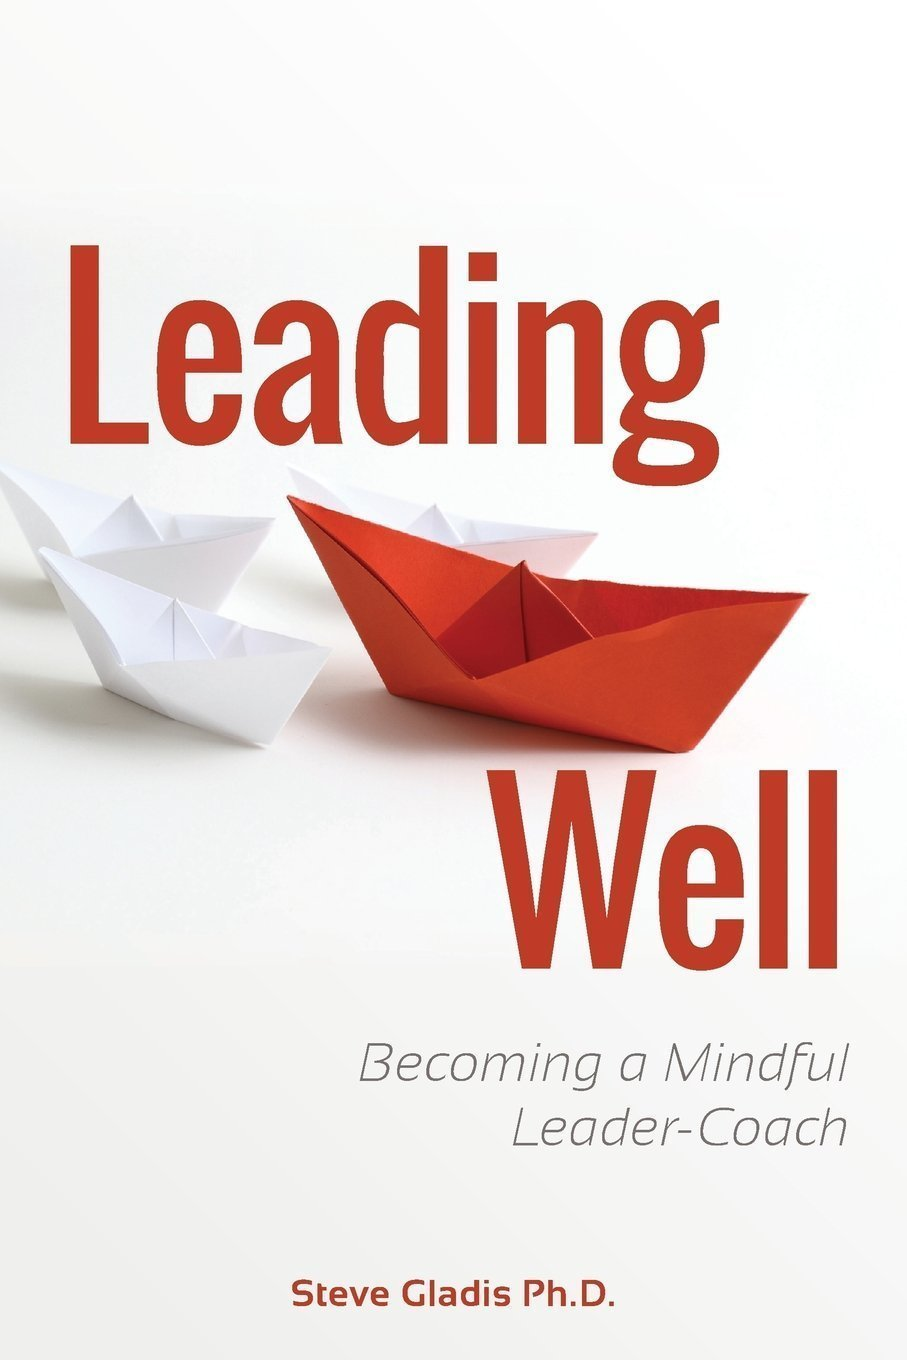 Leading Well: Becoming a Mindful Leader-Coach Executive Summary